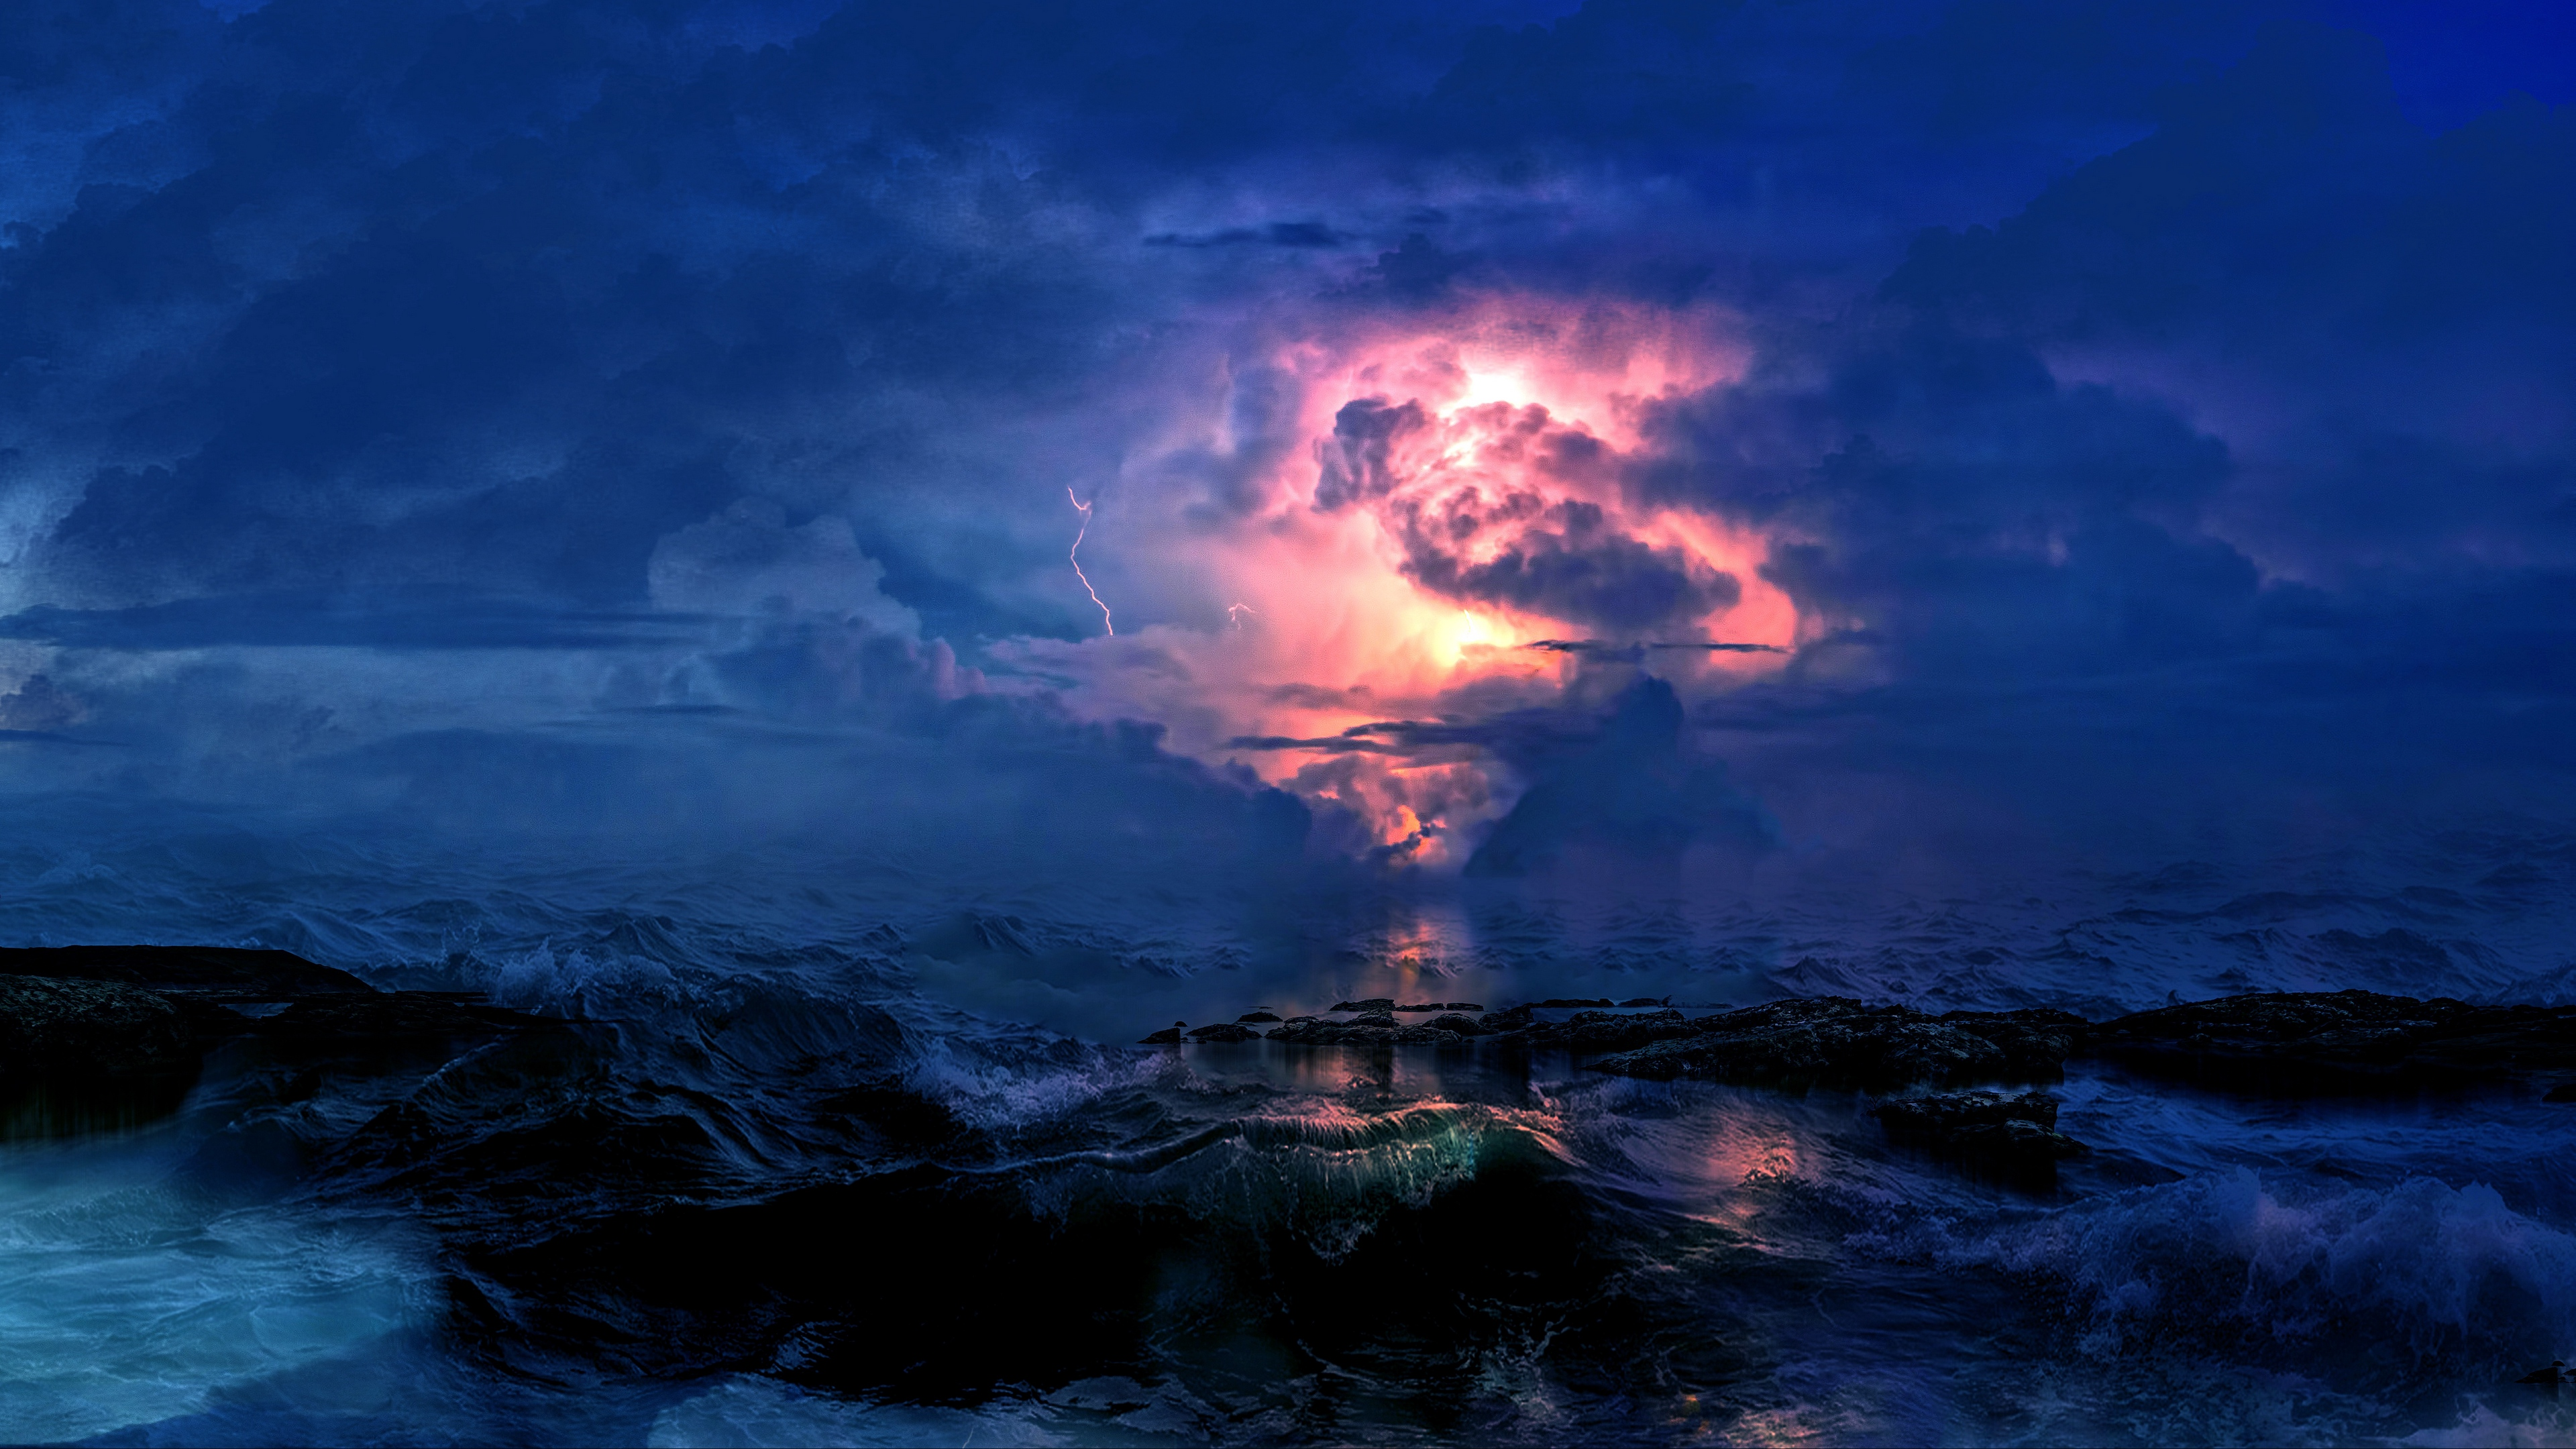 storm sea clouds lightning waves overcast 4k 1541113528 - storm, sea, clouds, lightning, waves, overcast 4k - Storm, Sea, Clouds